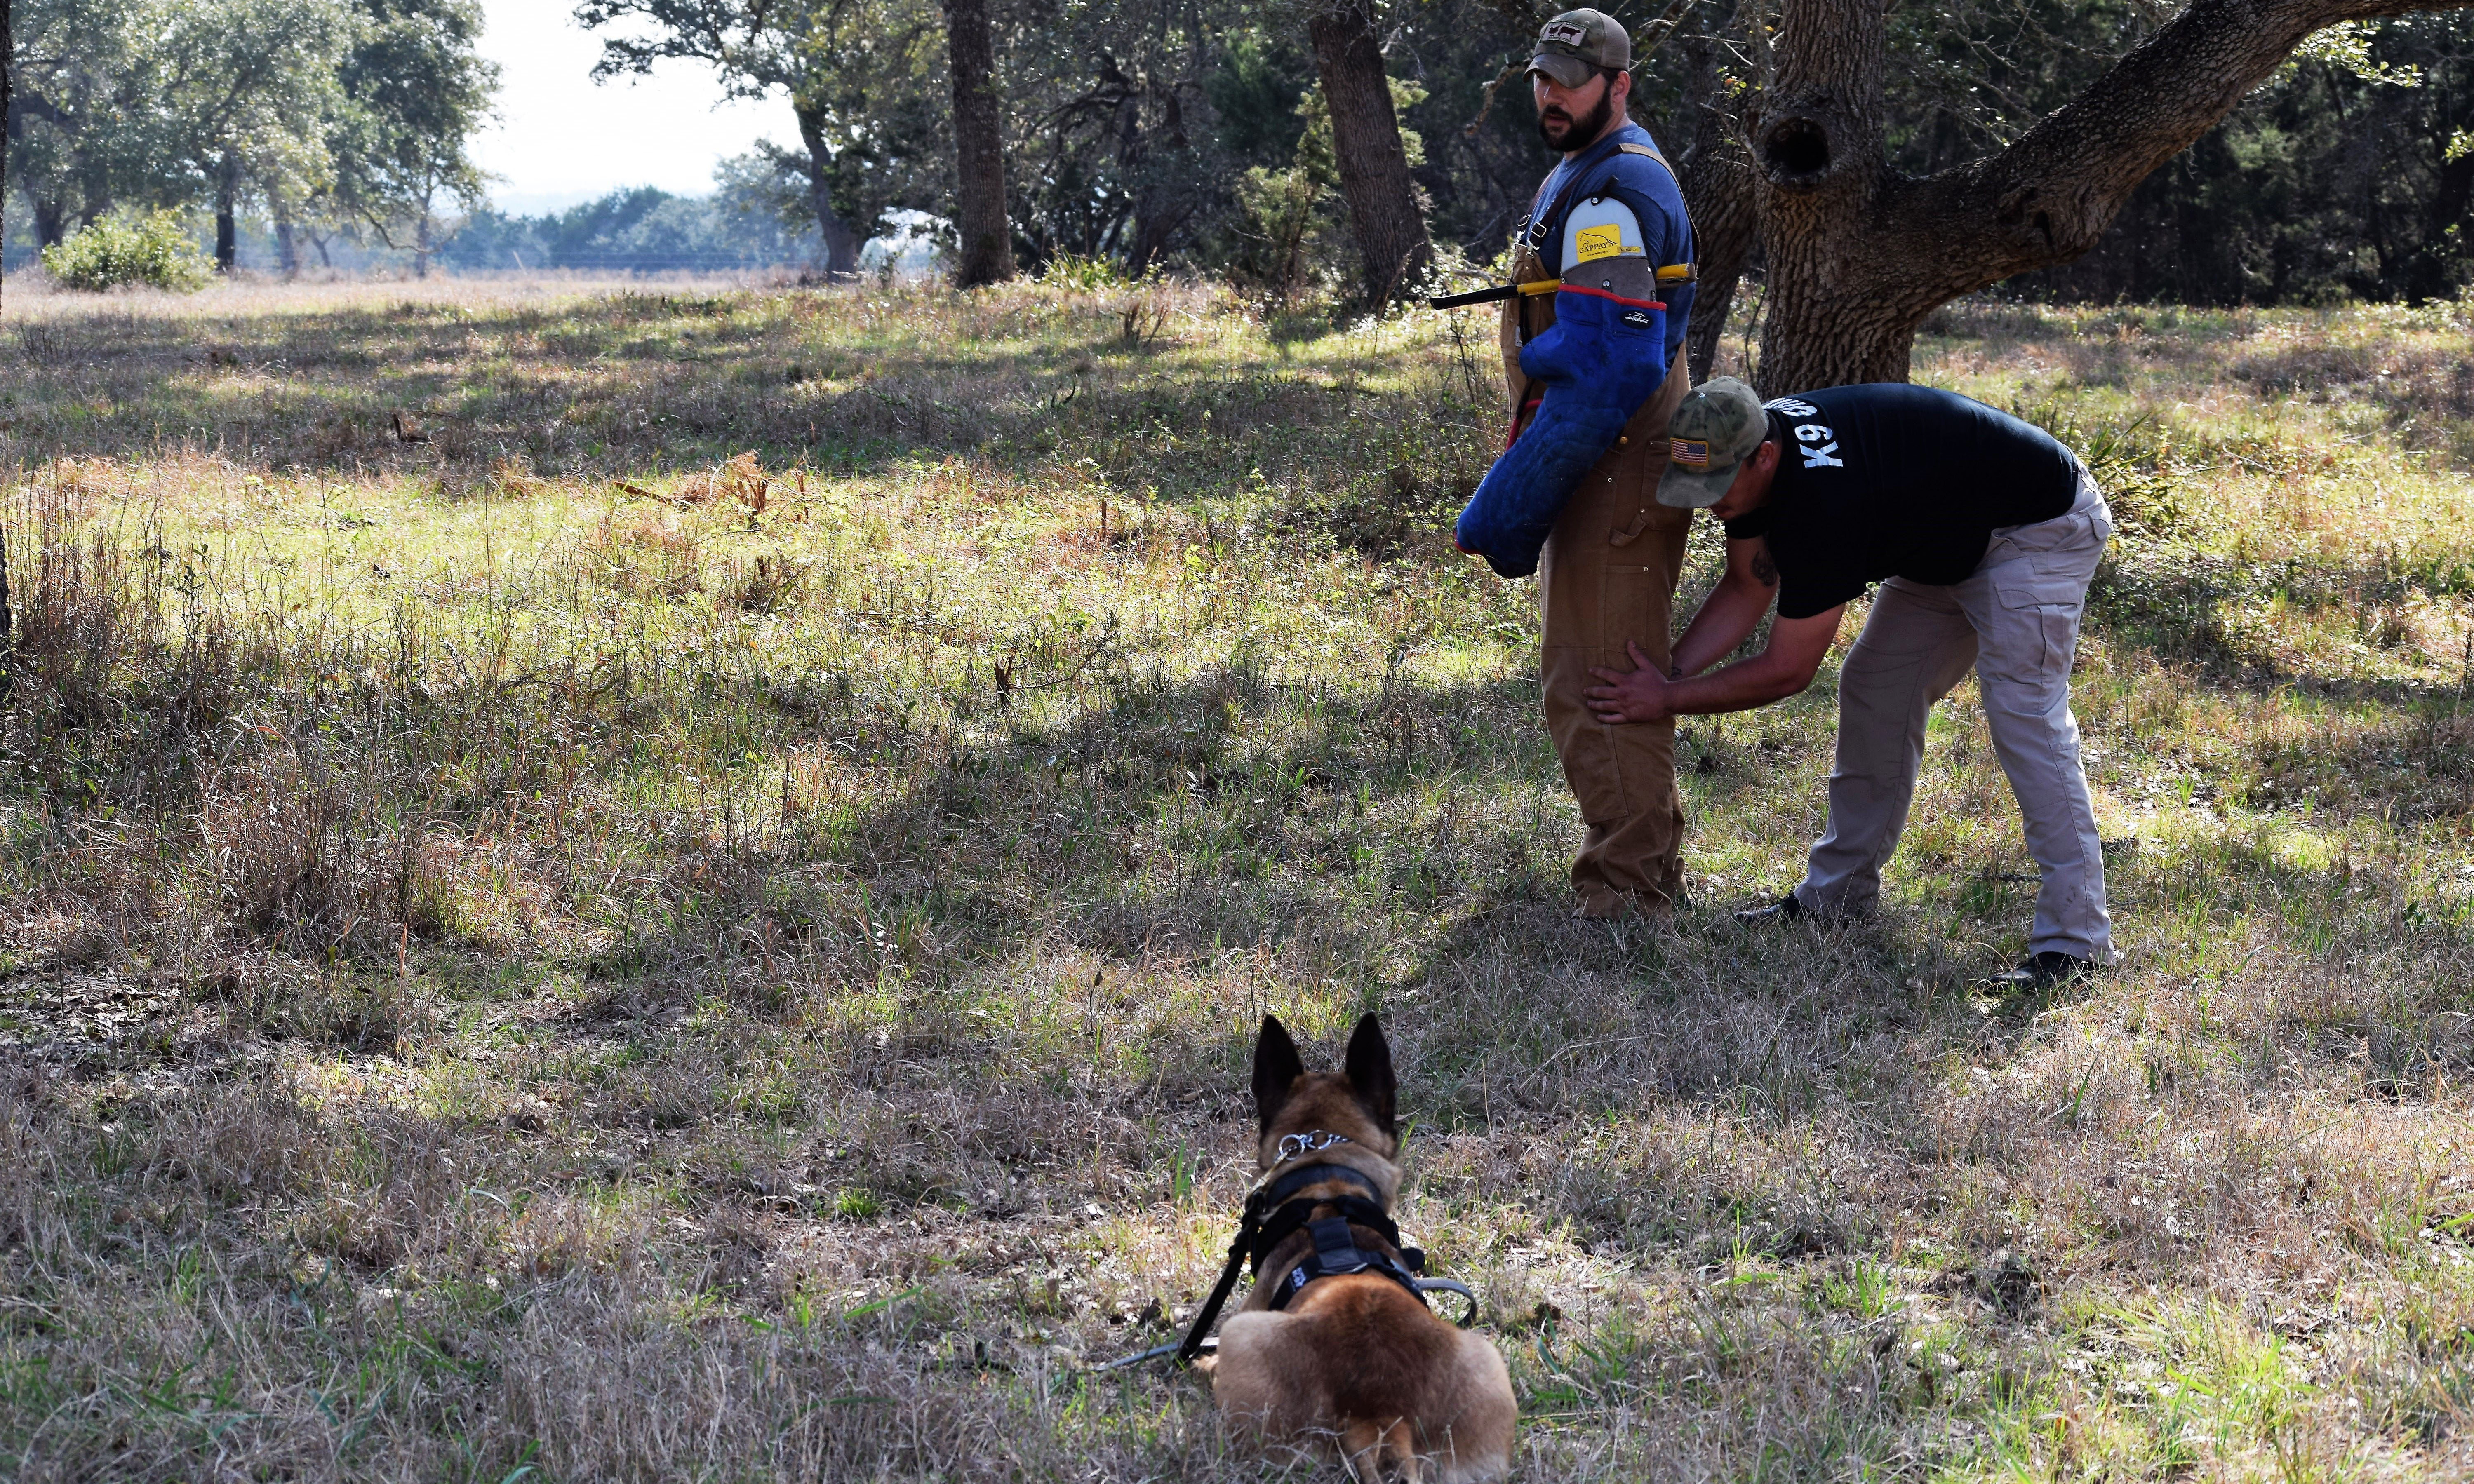 K9 Handler Training course Worldwide Canine Inc.